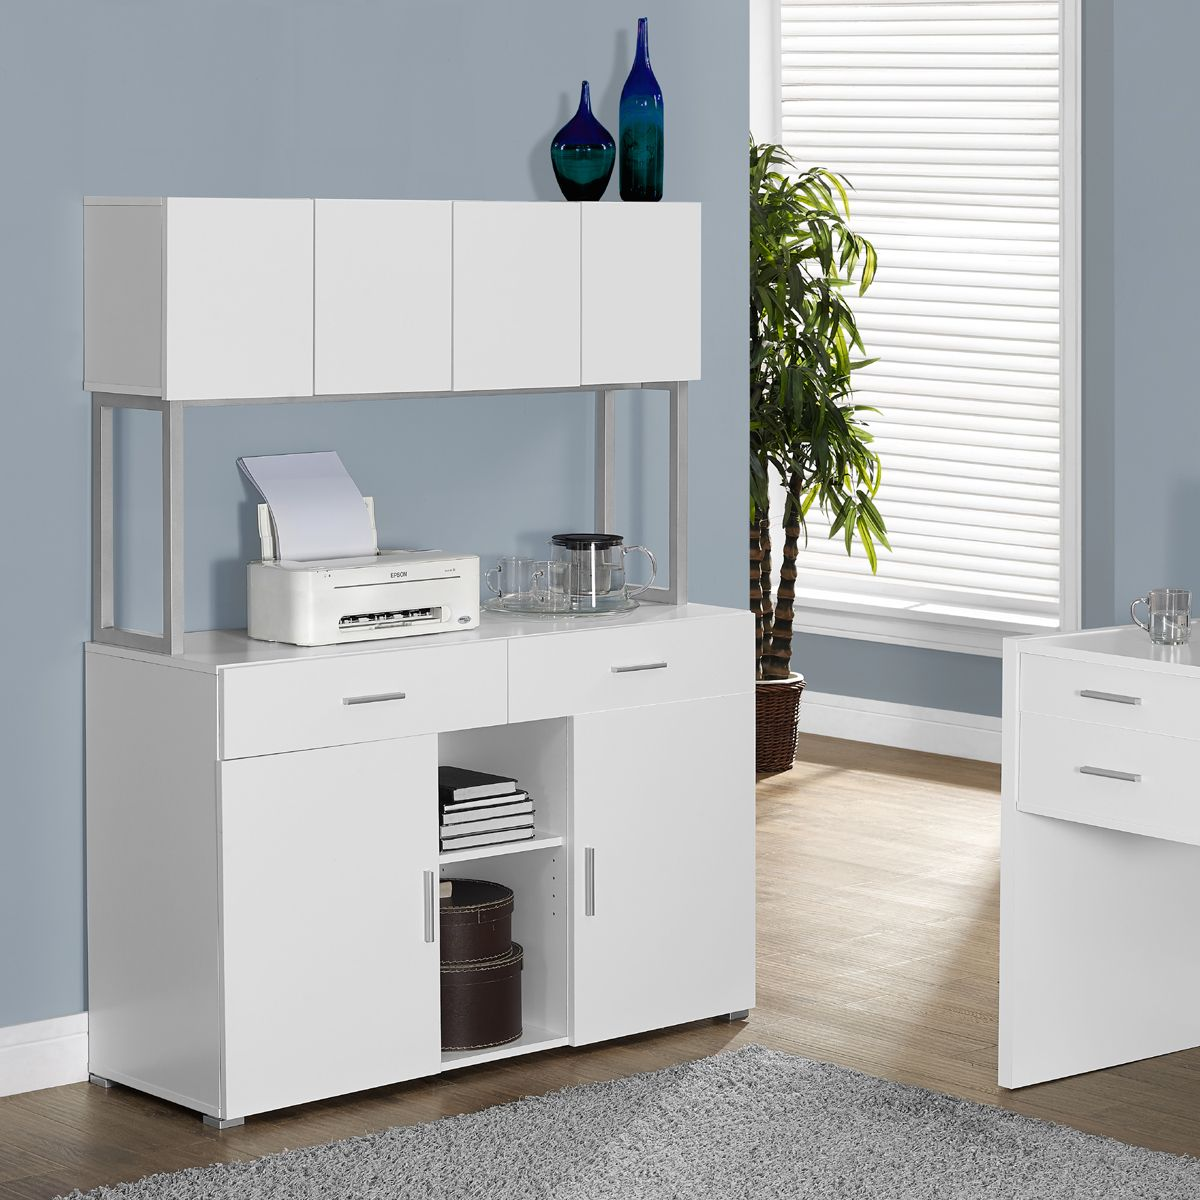 storage tts cabinets buy cupboards lockable office